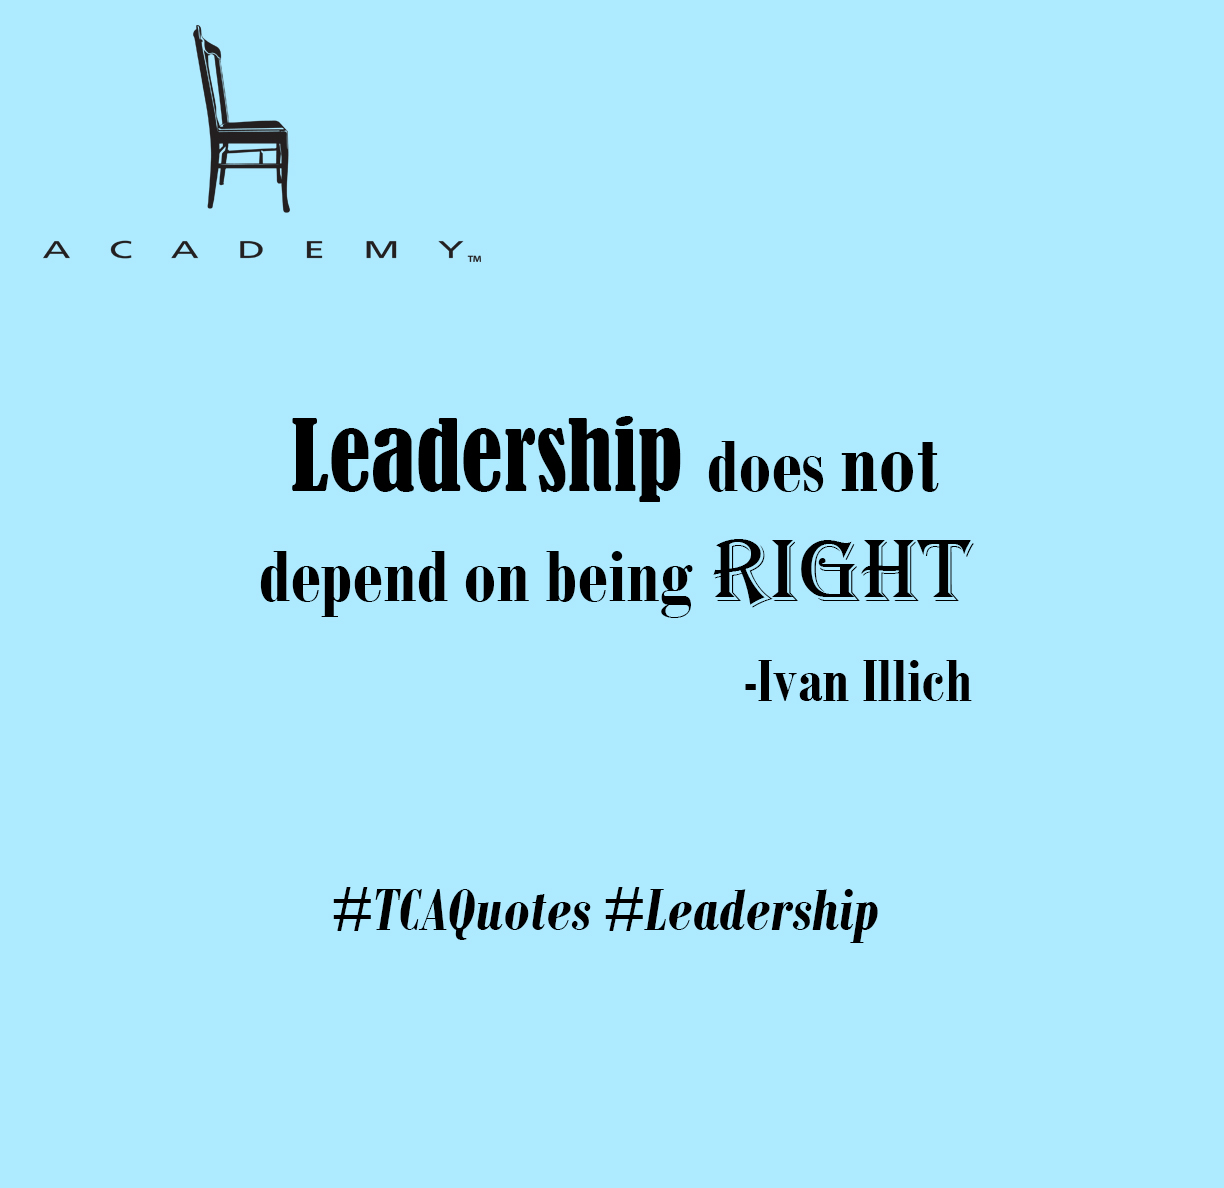 Leadership does not depend on being right